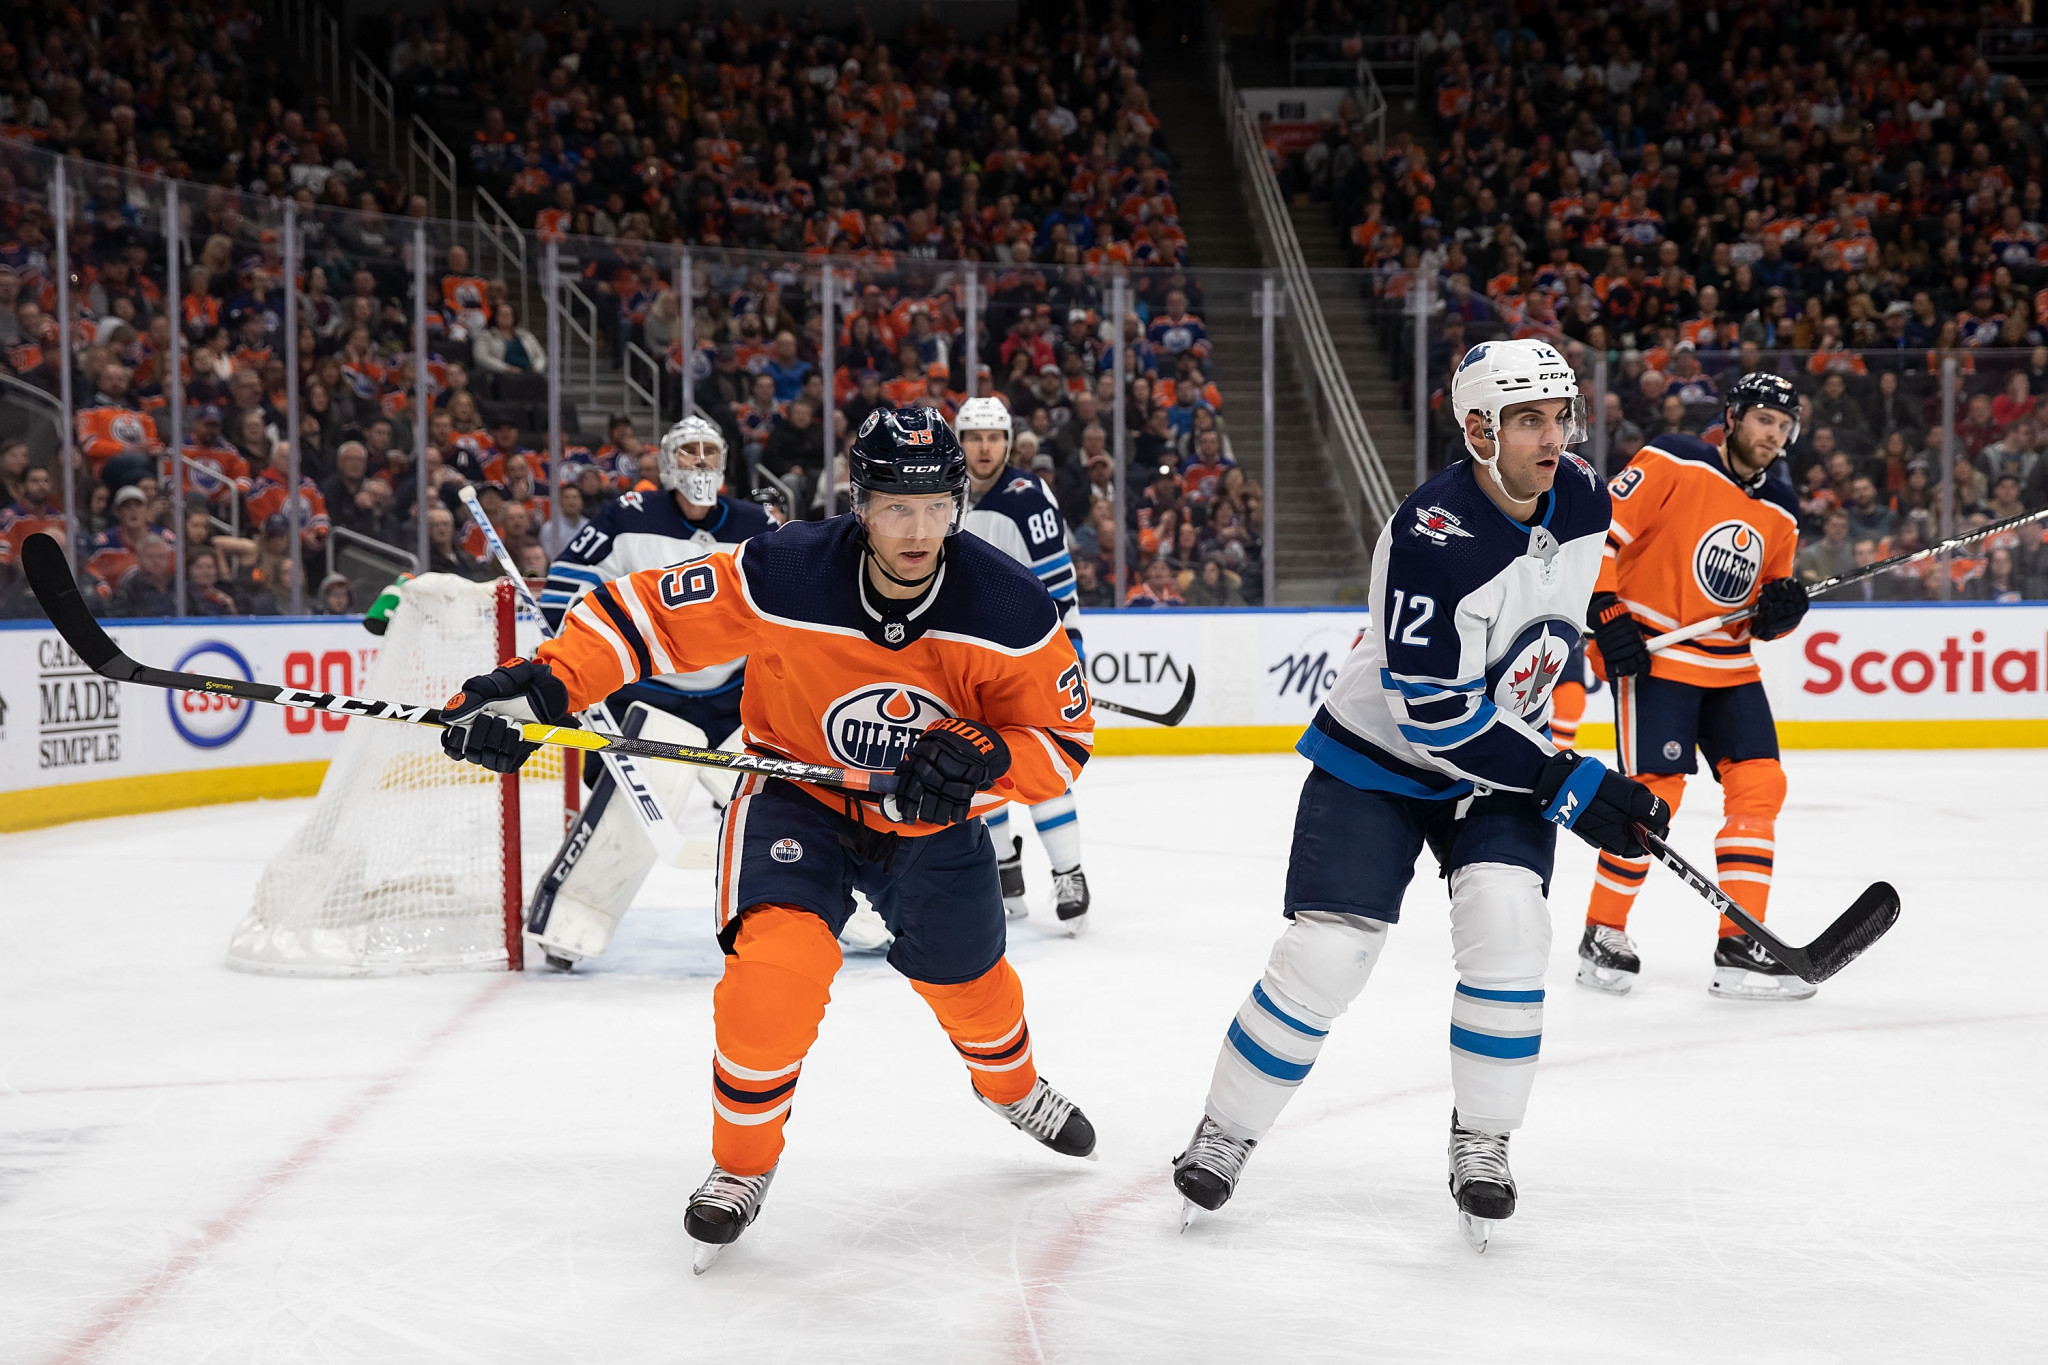 The 2019-2020 NHL season was suspended on March 12 due to the coronavirus pandemic ©Getty Images